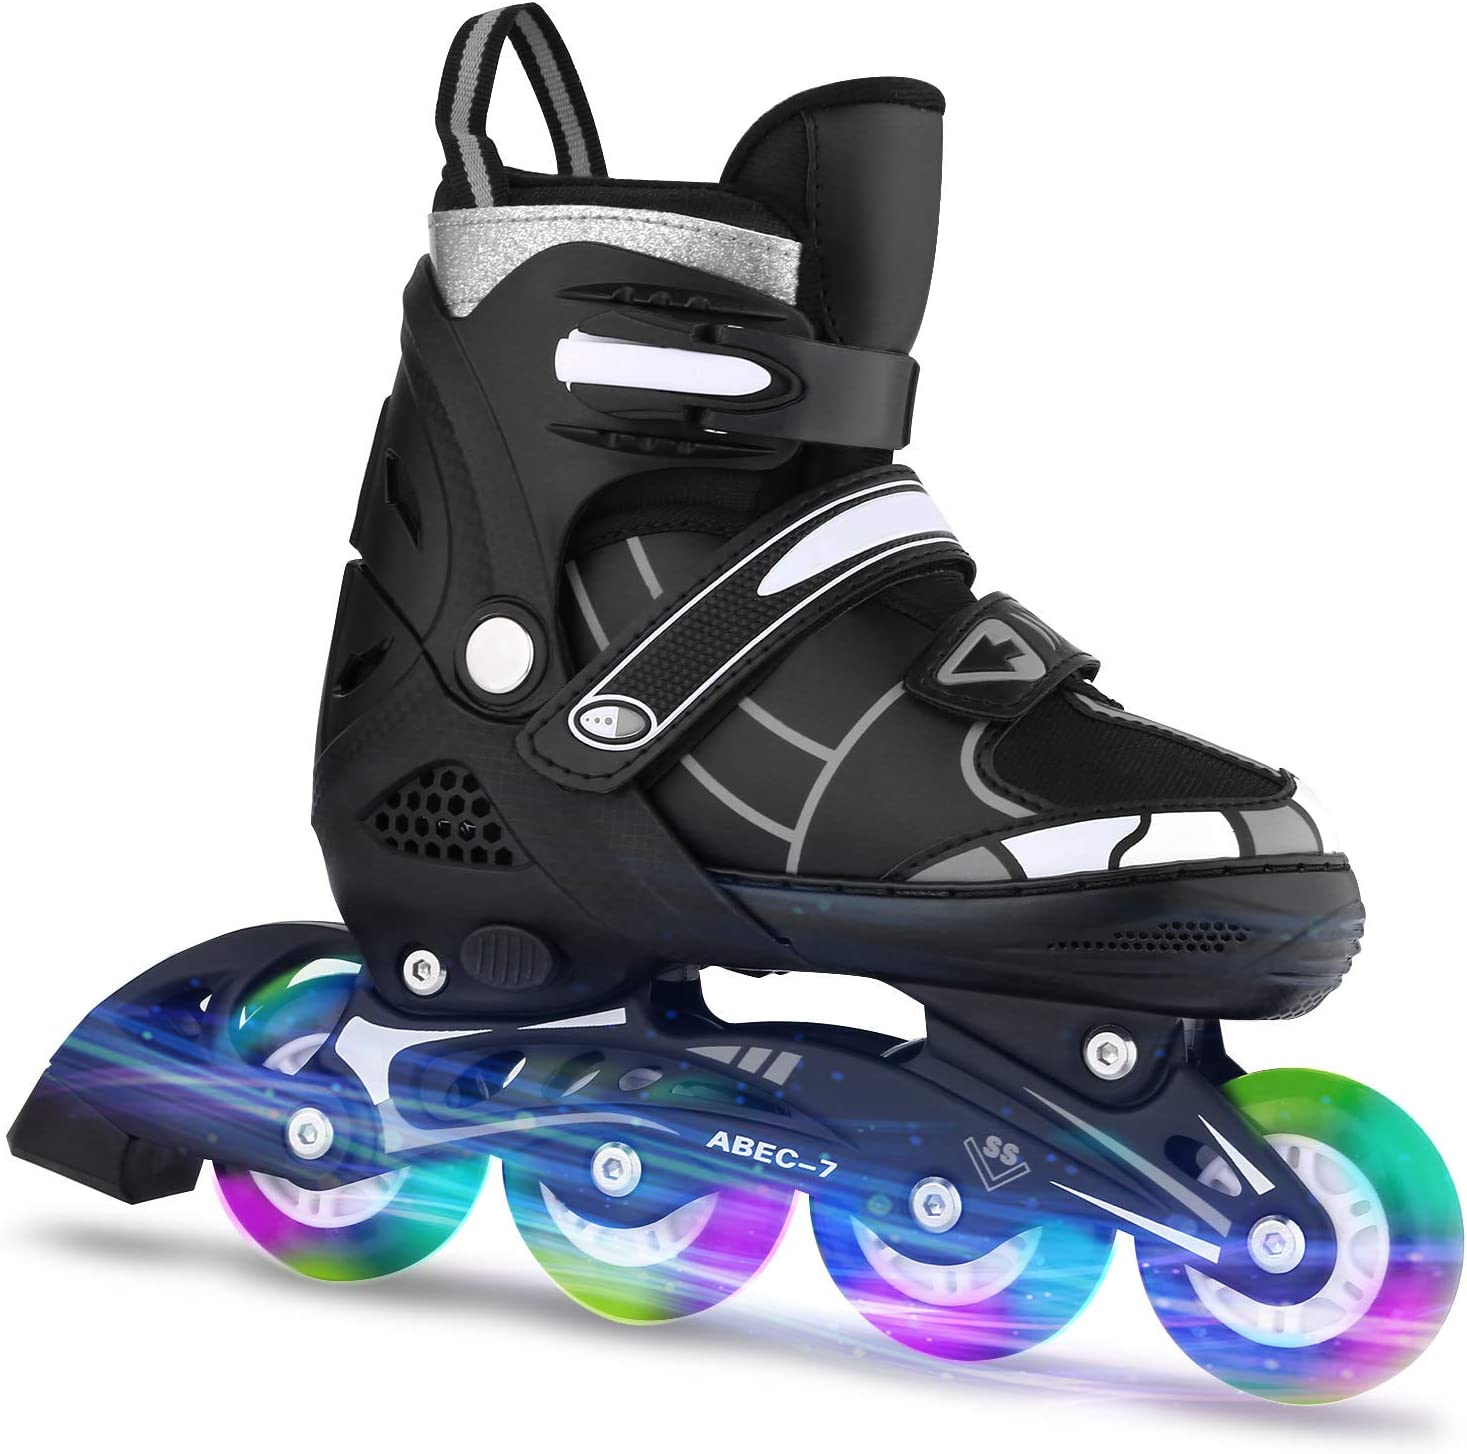 Adjustable with Light Up Wheels Beginner Roller Fun Flashing Illuminating Roller Skates for Kids Boys and Girls 2 Colors and 3 Sizes ANCHEER Inline Skates for Kids